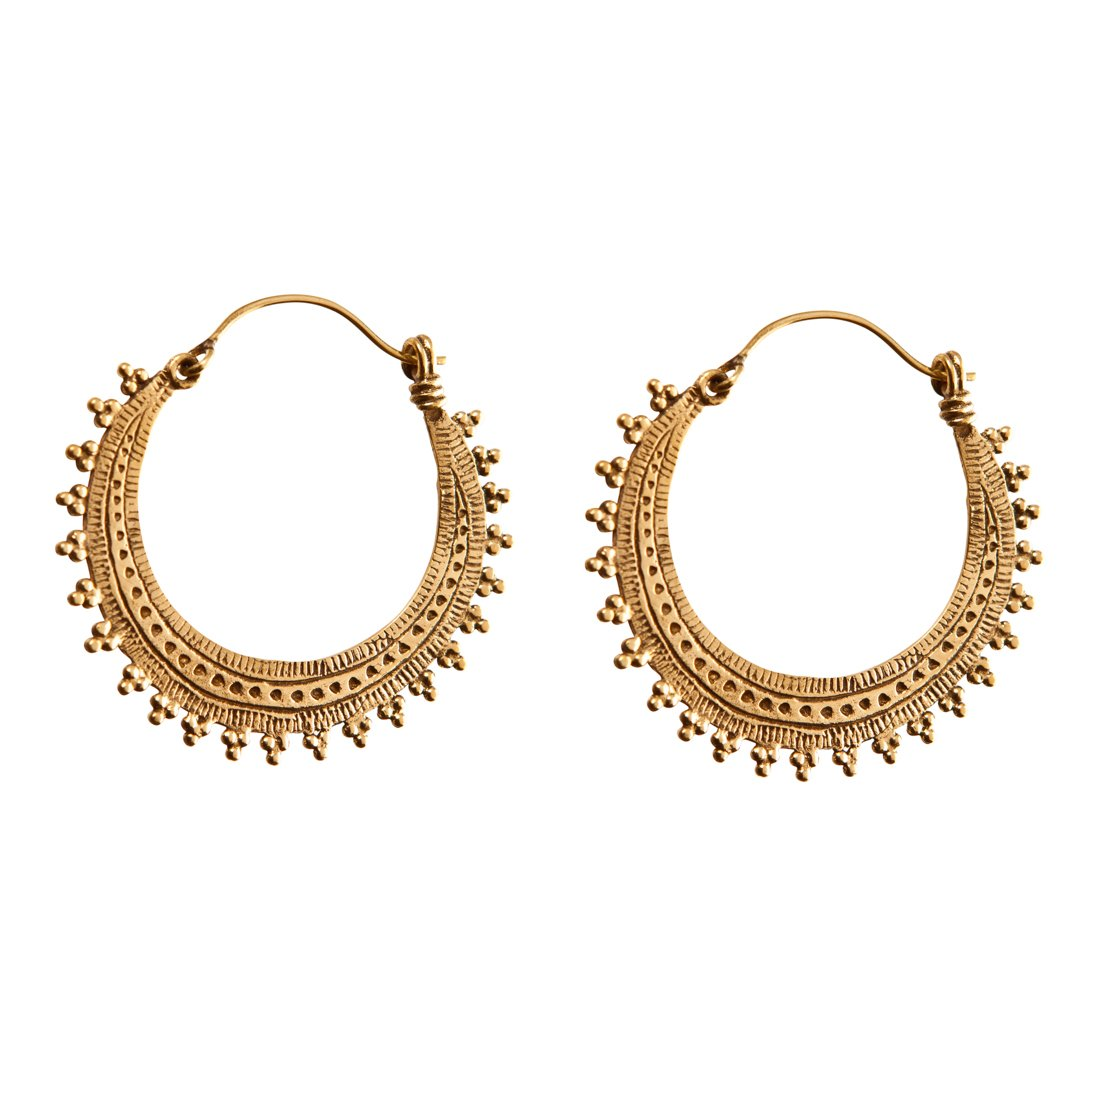 31d02fd4a7ce7 Buy 81stgeneration Women's Brass Gold Tone Ethnic Hoop Tribal Indian ...